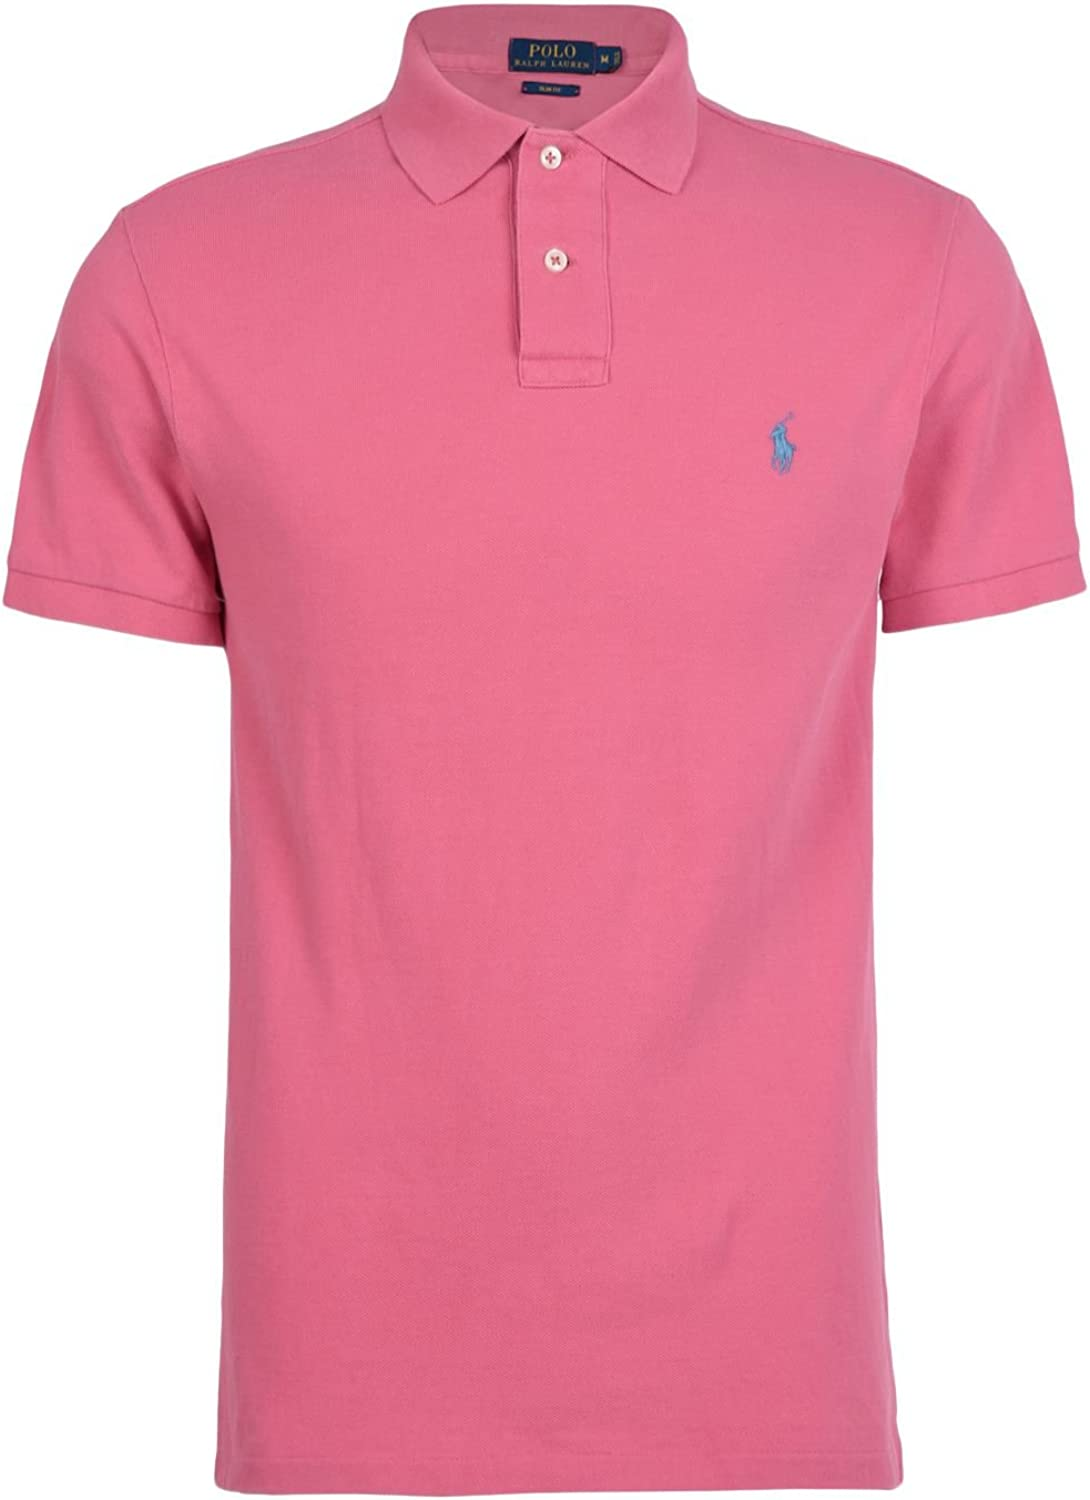 Polo Ralph Lauren Short Sleeve-Knit, camiseta polo hombre Custom ...